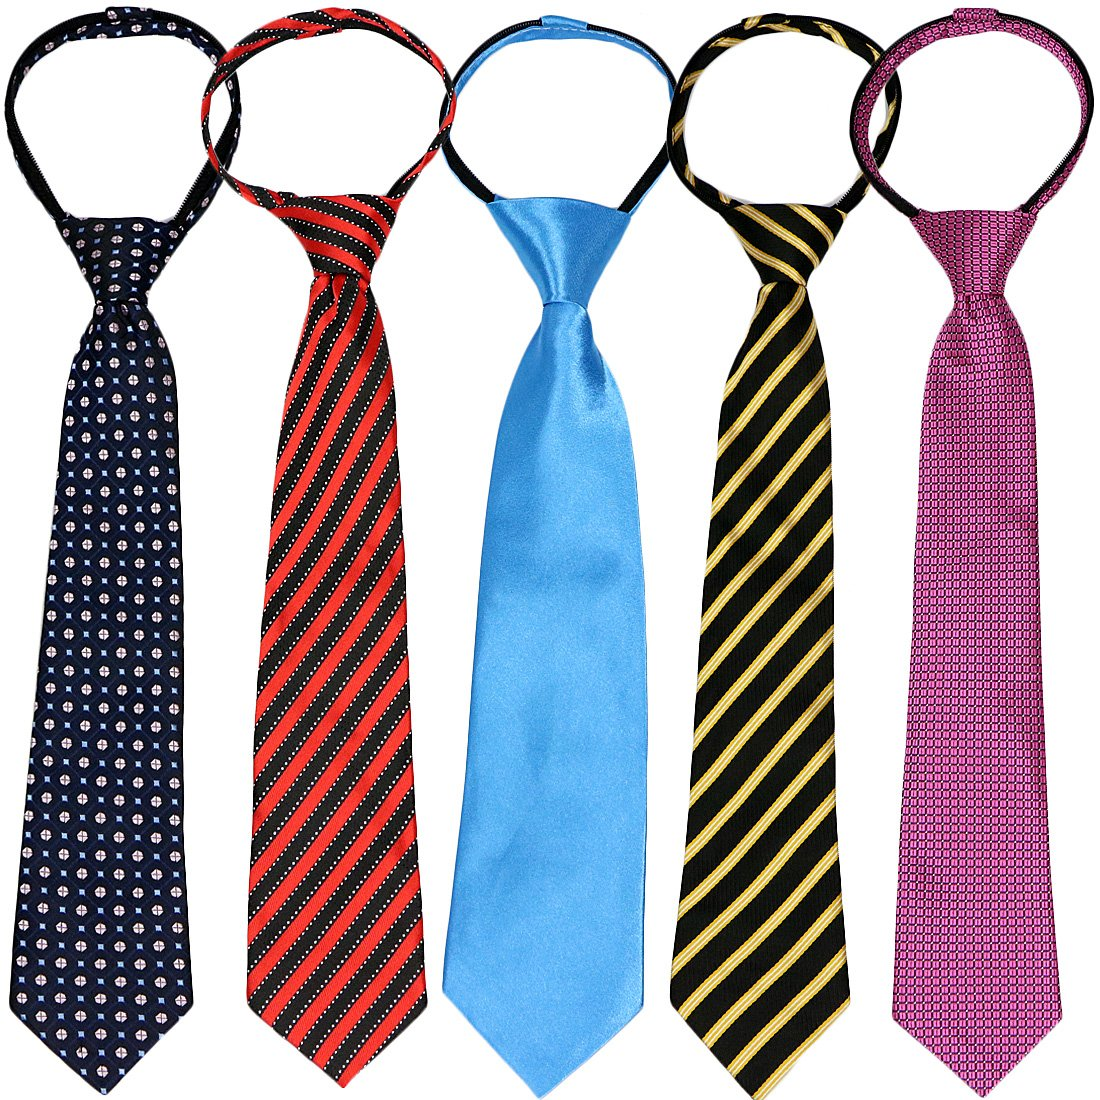 kilofly Pre-tied Adjustable Zipper Tie Kids Boys Baby Necktie Value Set of 5